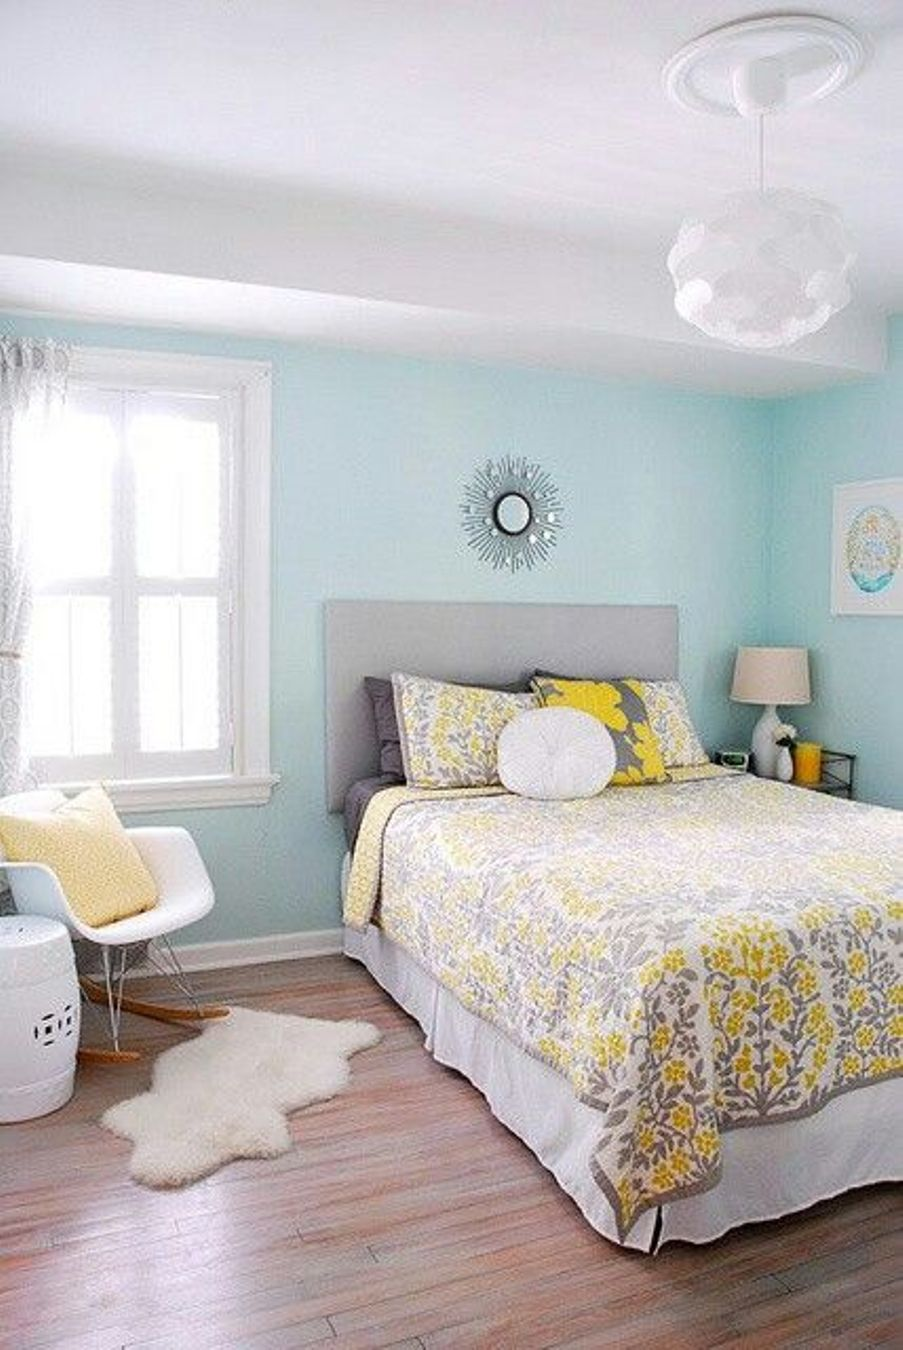 Best Paint Colors for Small Room – Some Tips | HomesFeed